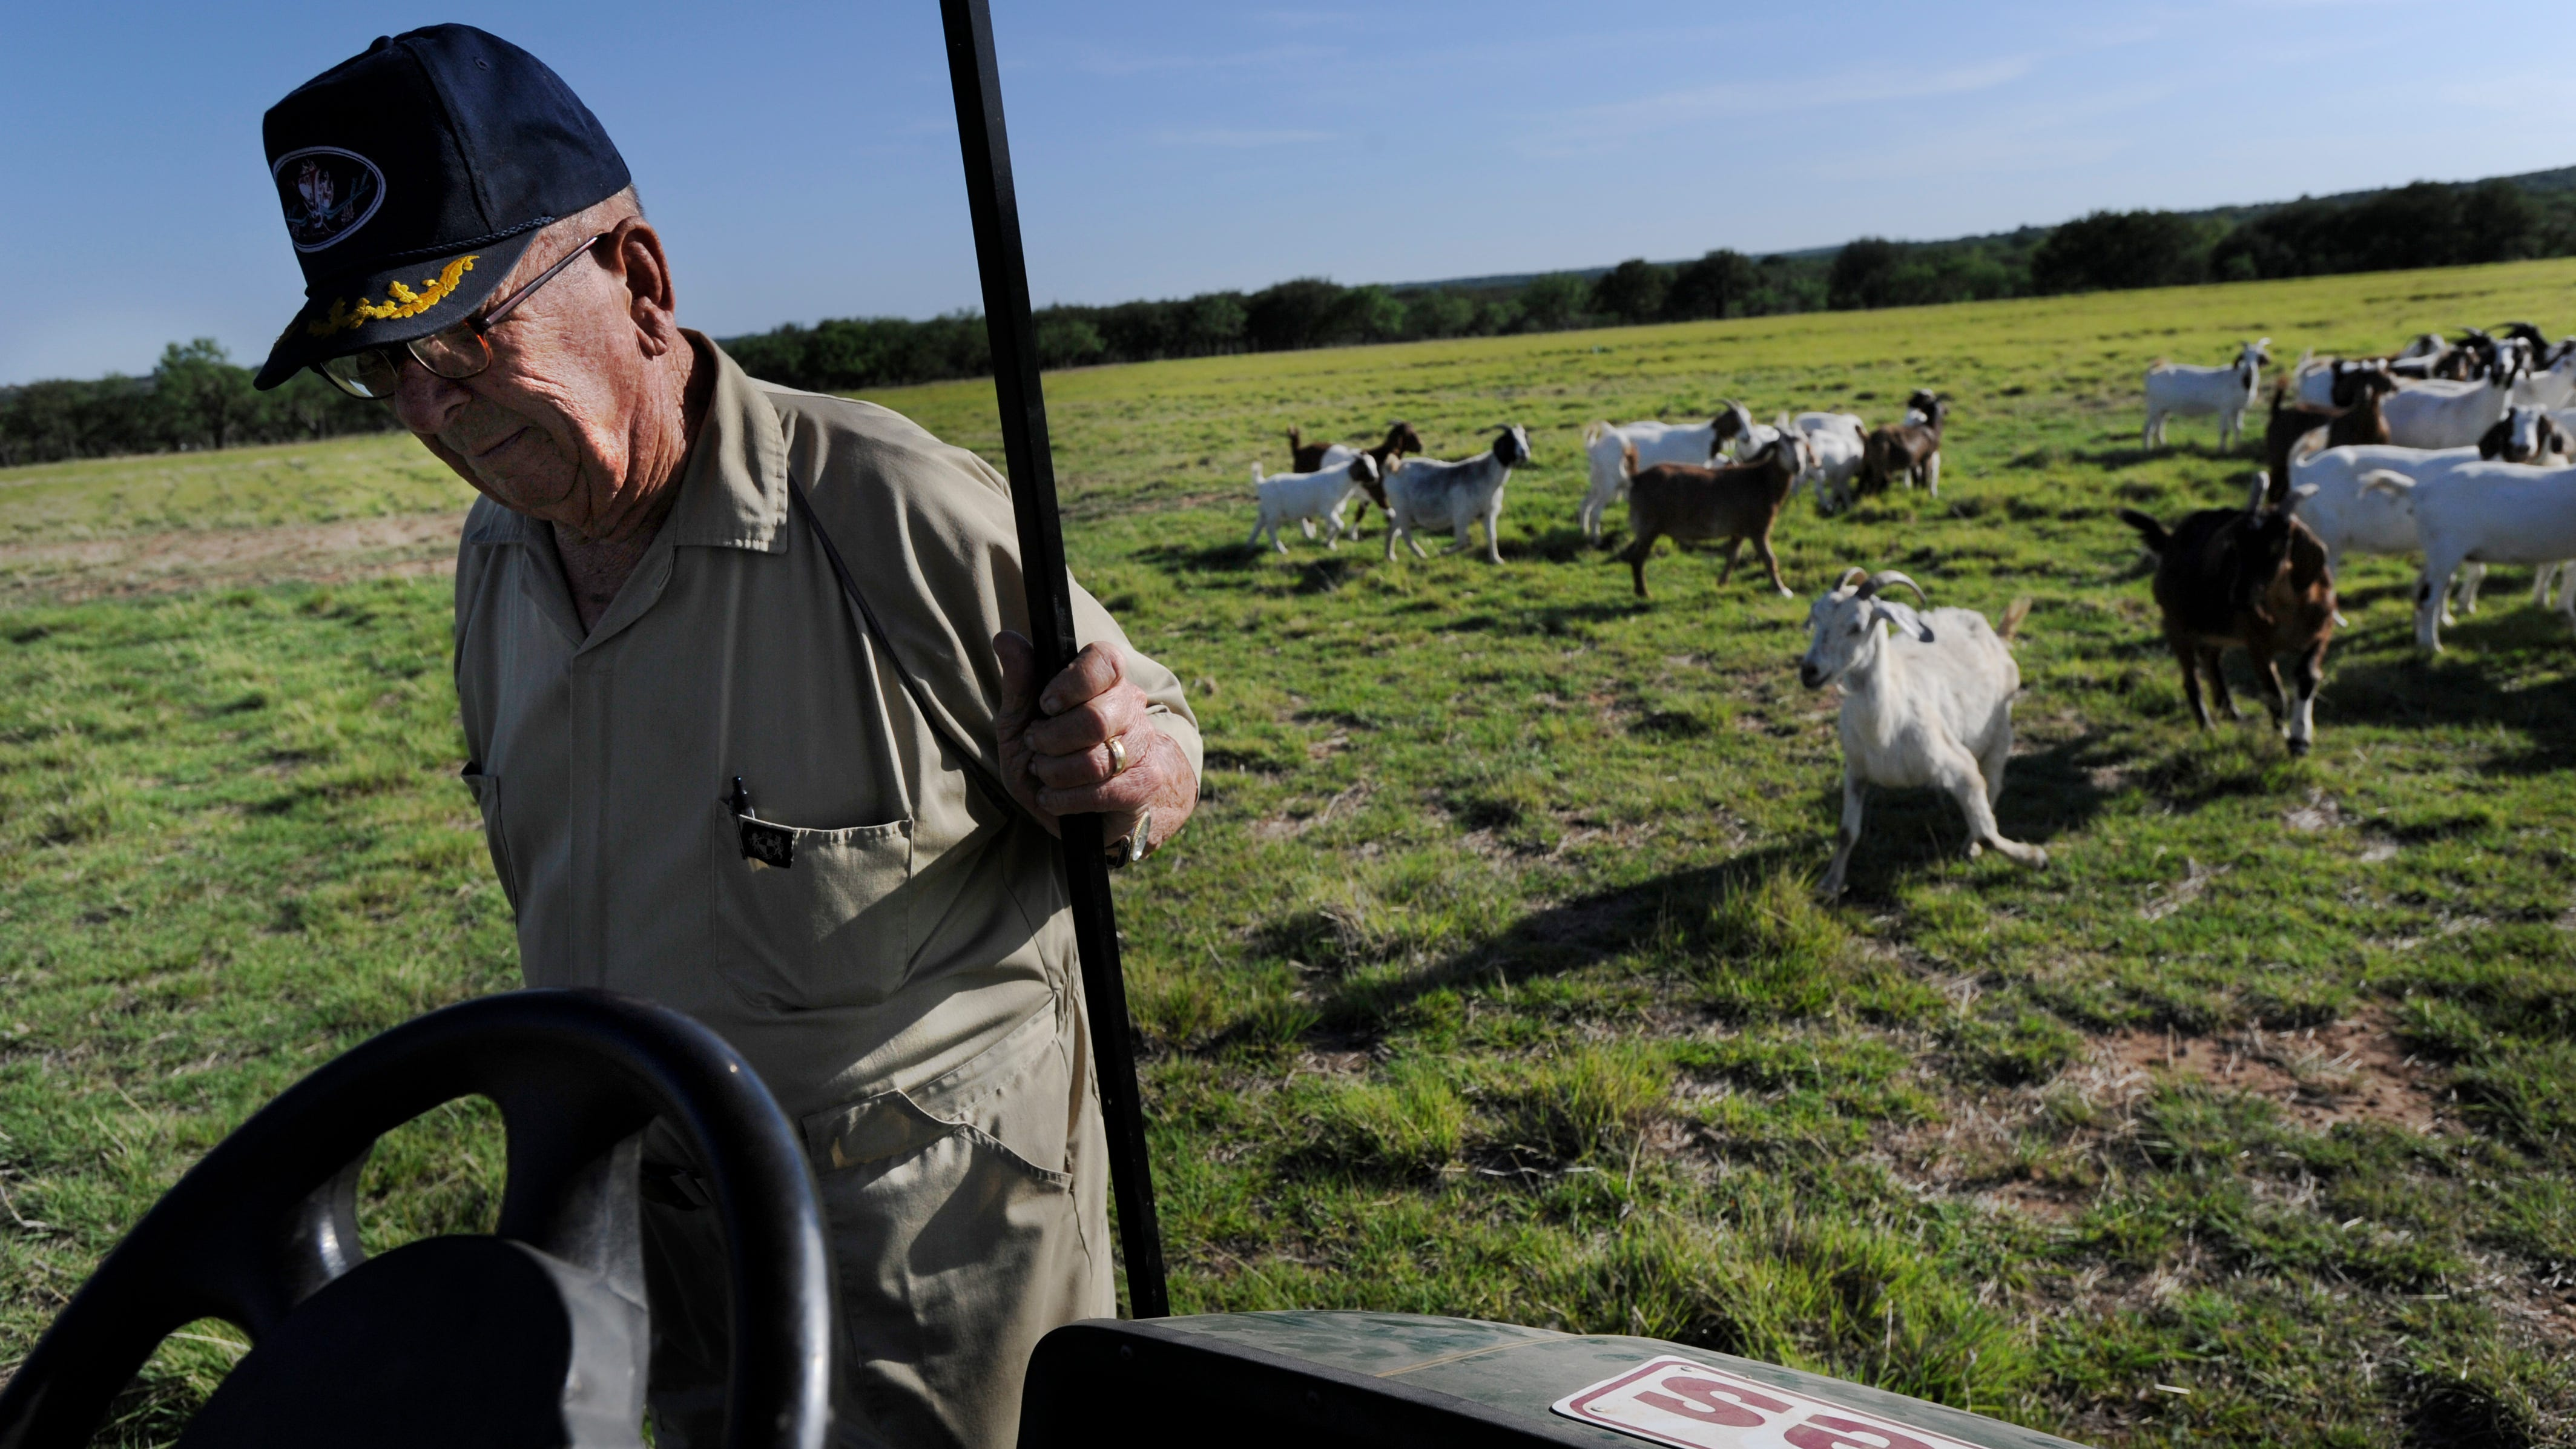 Wes Hays steps into his golf cart after checking on his goats at his Novice ranch Friday May 26, 2011. Hays was awarded the Navy Cross for his service as a naval aviator during World War II.